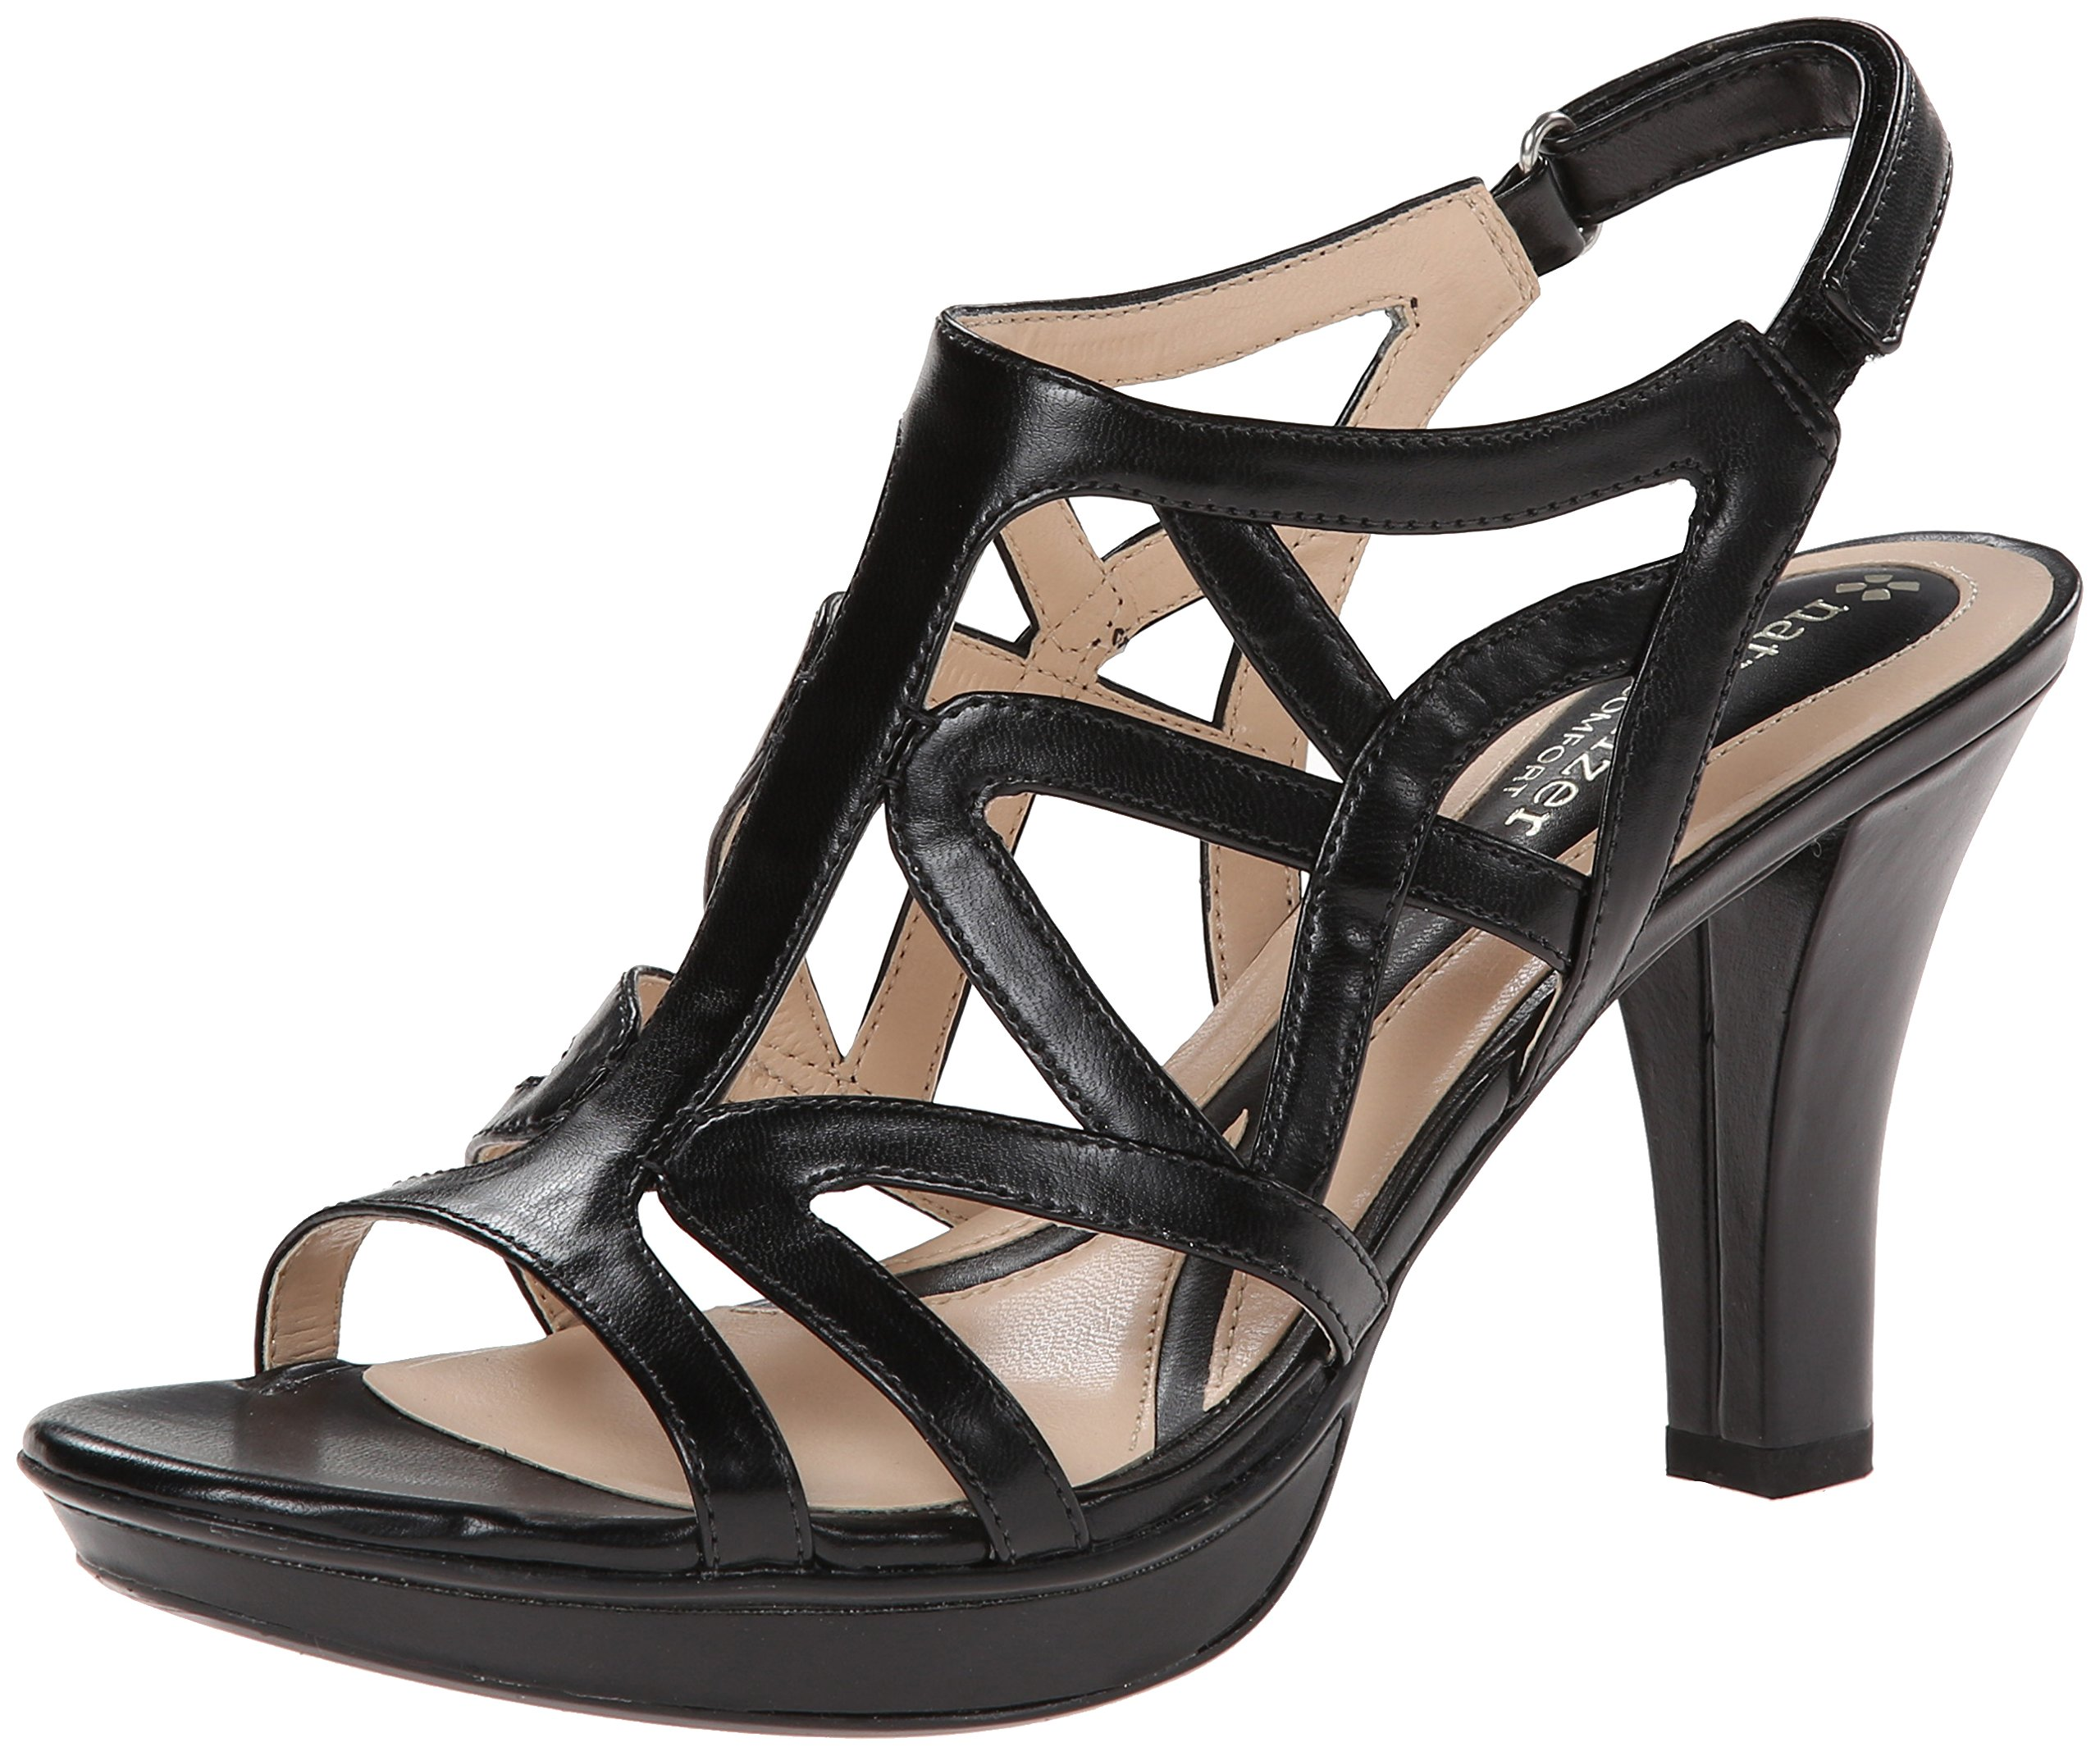 Naturalizer Women's Danya Dress Sandal,Black,7.5 M US by Naturalizer